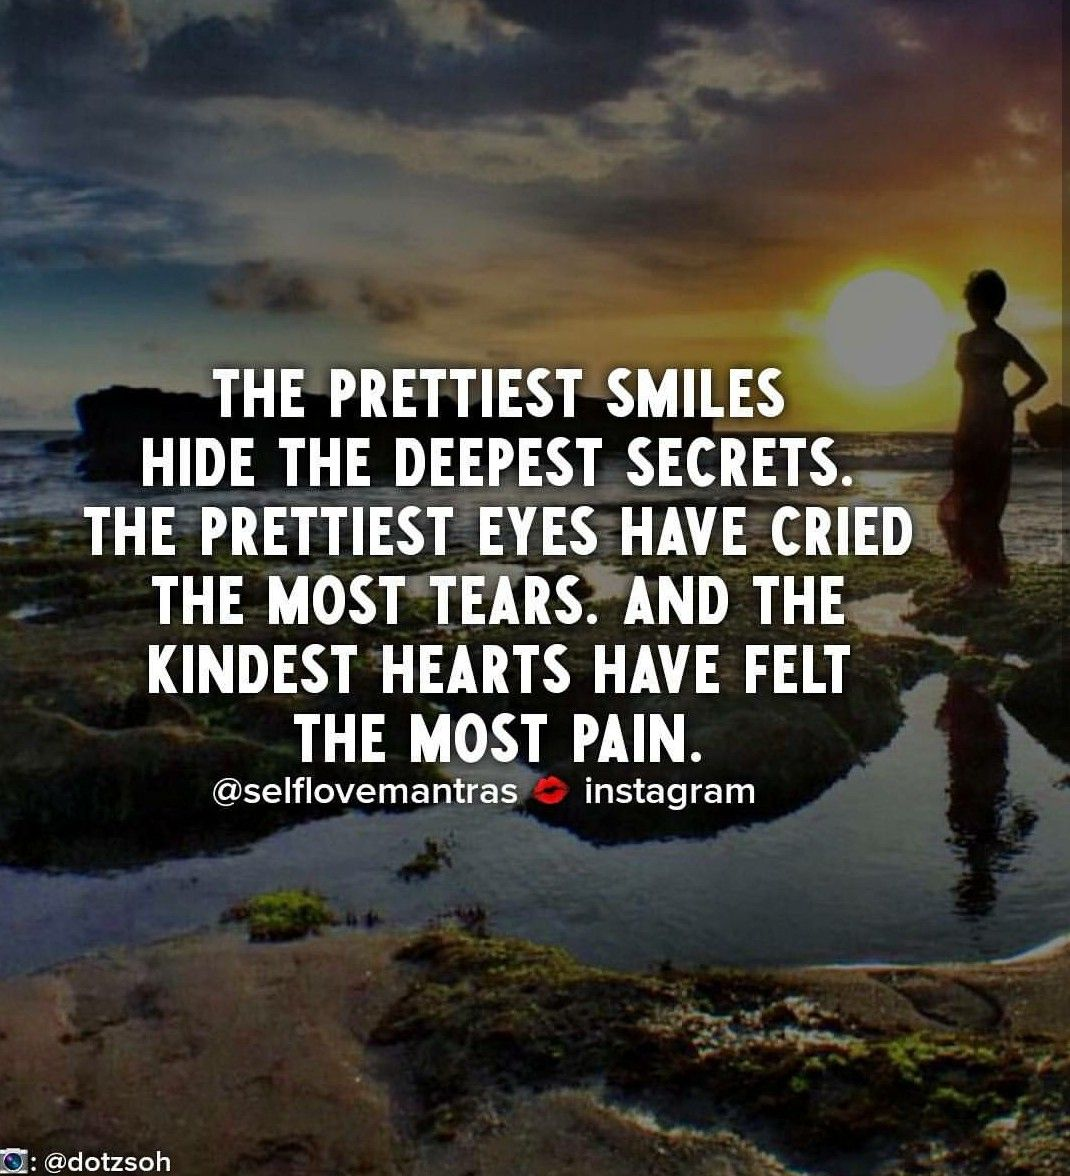 Image Result For The Loneliest People Are The Kindest The Saddest People Smile The Brightest The Most Damaged People Are The Wisest All Because They Do Not